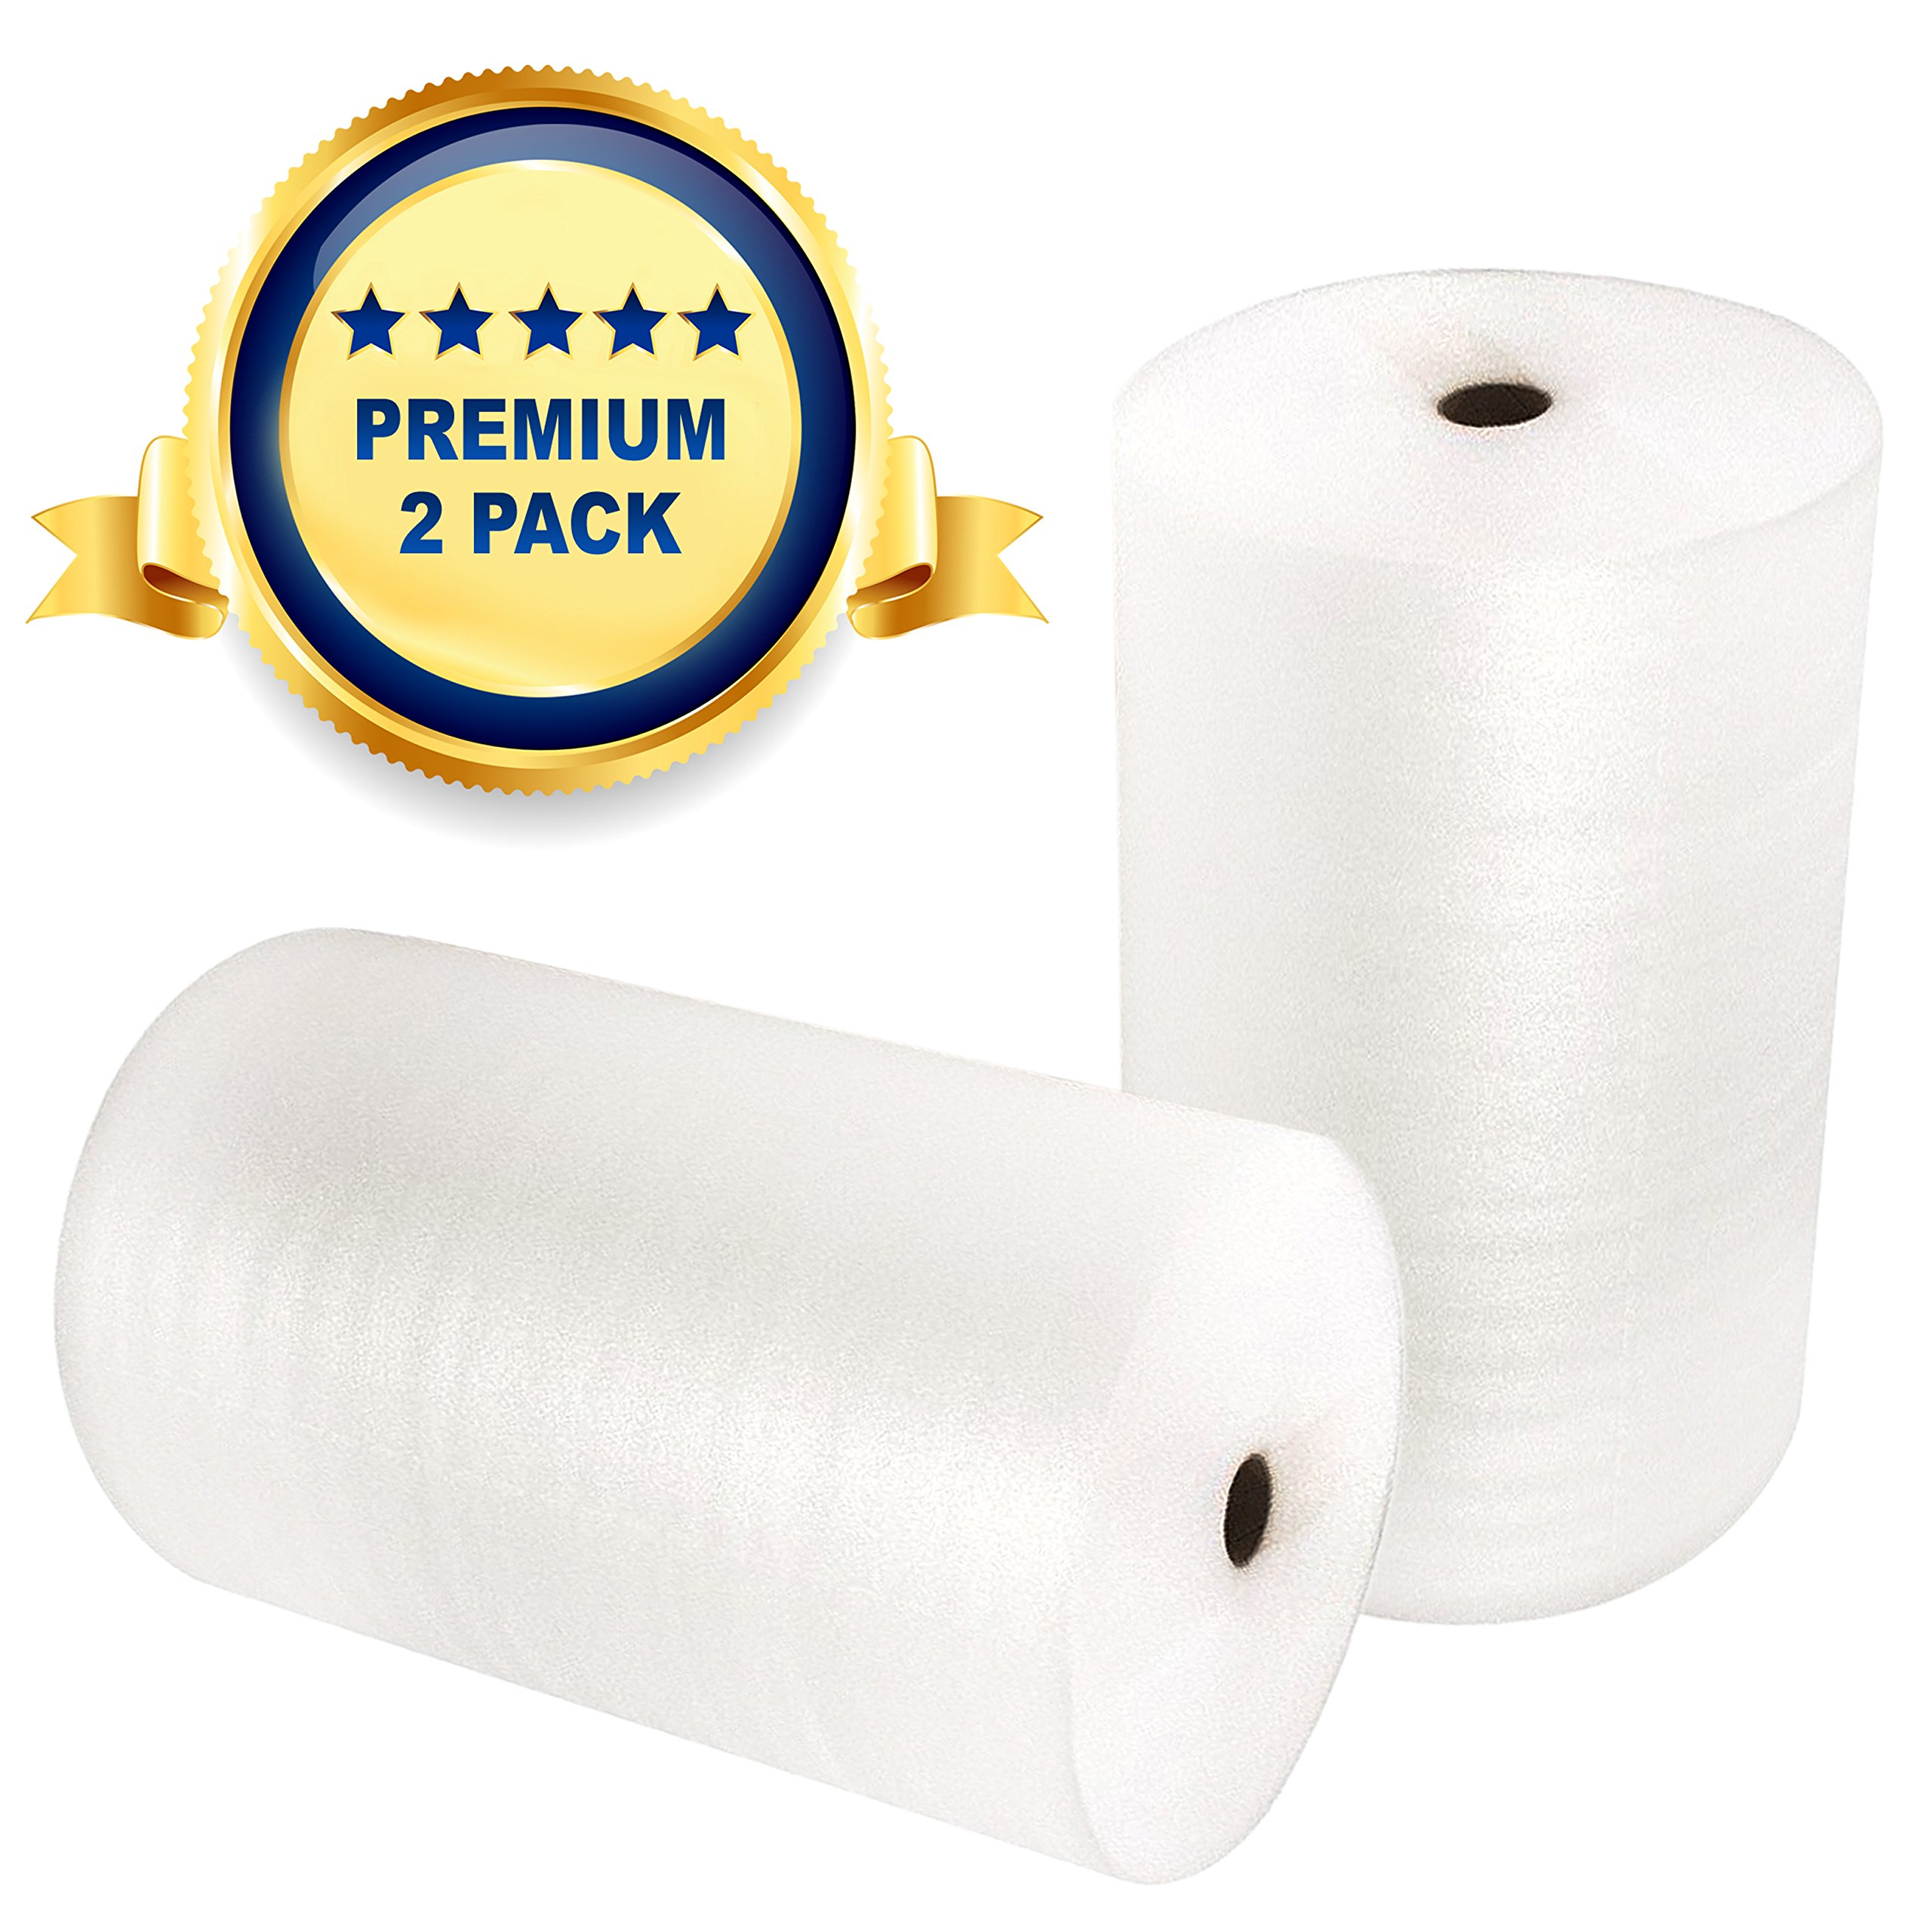 Foam Wrap Roll 104' x 12'' (2Pack) 52 Feet per Roll - Foam Wrapping for Shipping, Moving and Storage - Protective Packing Wrap for Glasses, Dishes, Electronics and Other Breakable Items